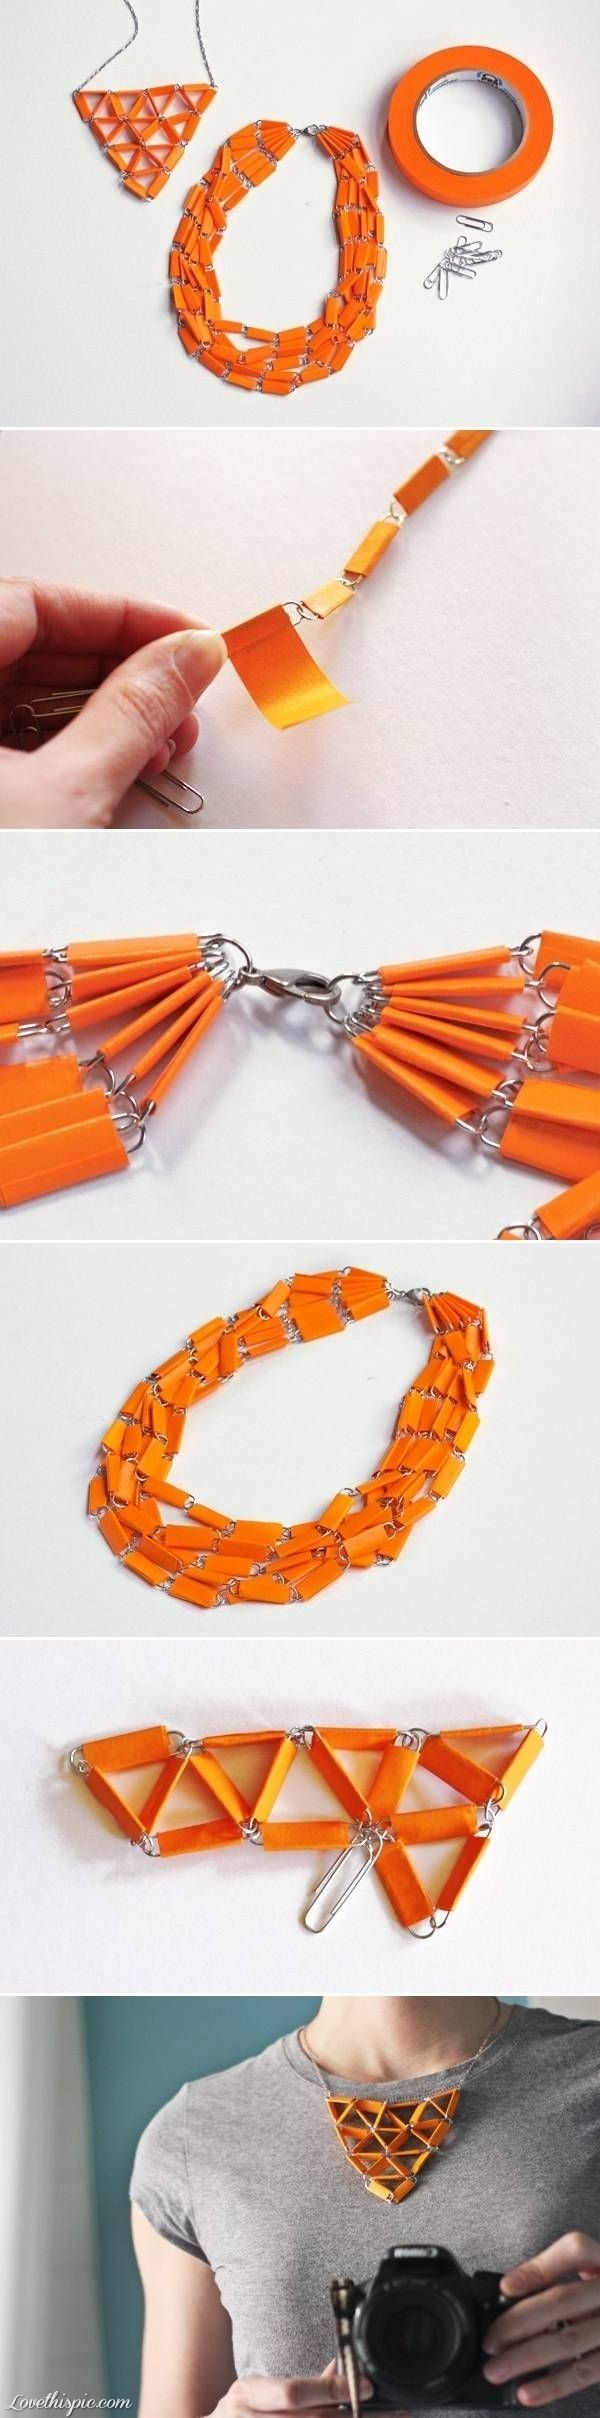 Easy Kids, tweens or teens craft. Works well with patterned duct tape.